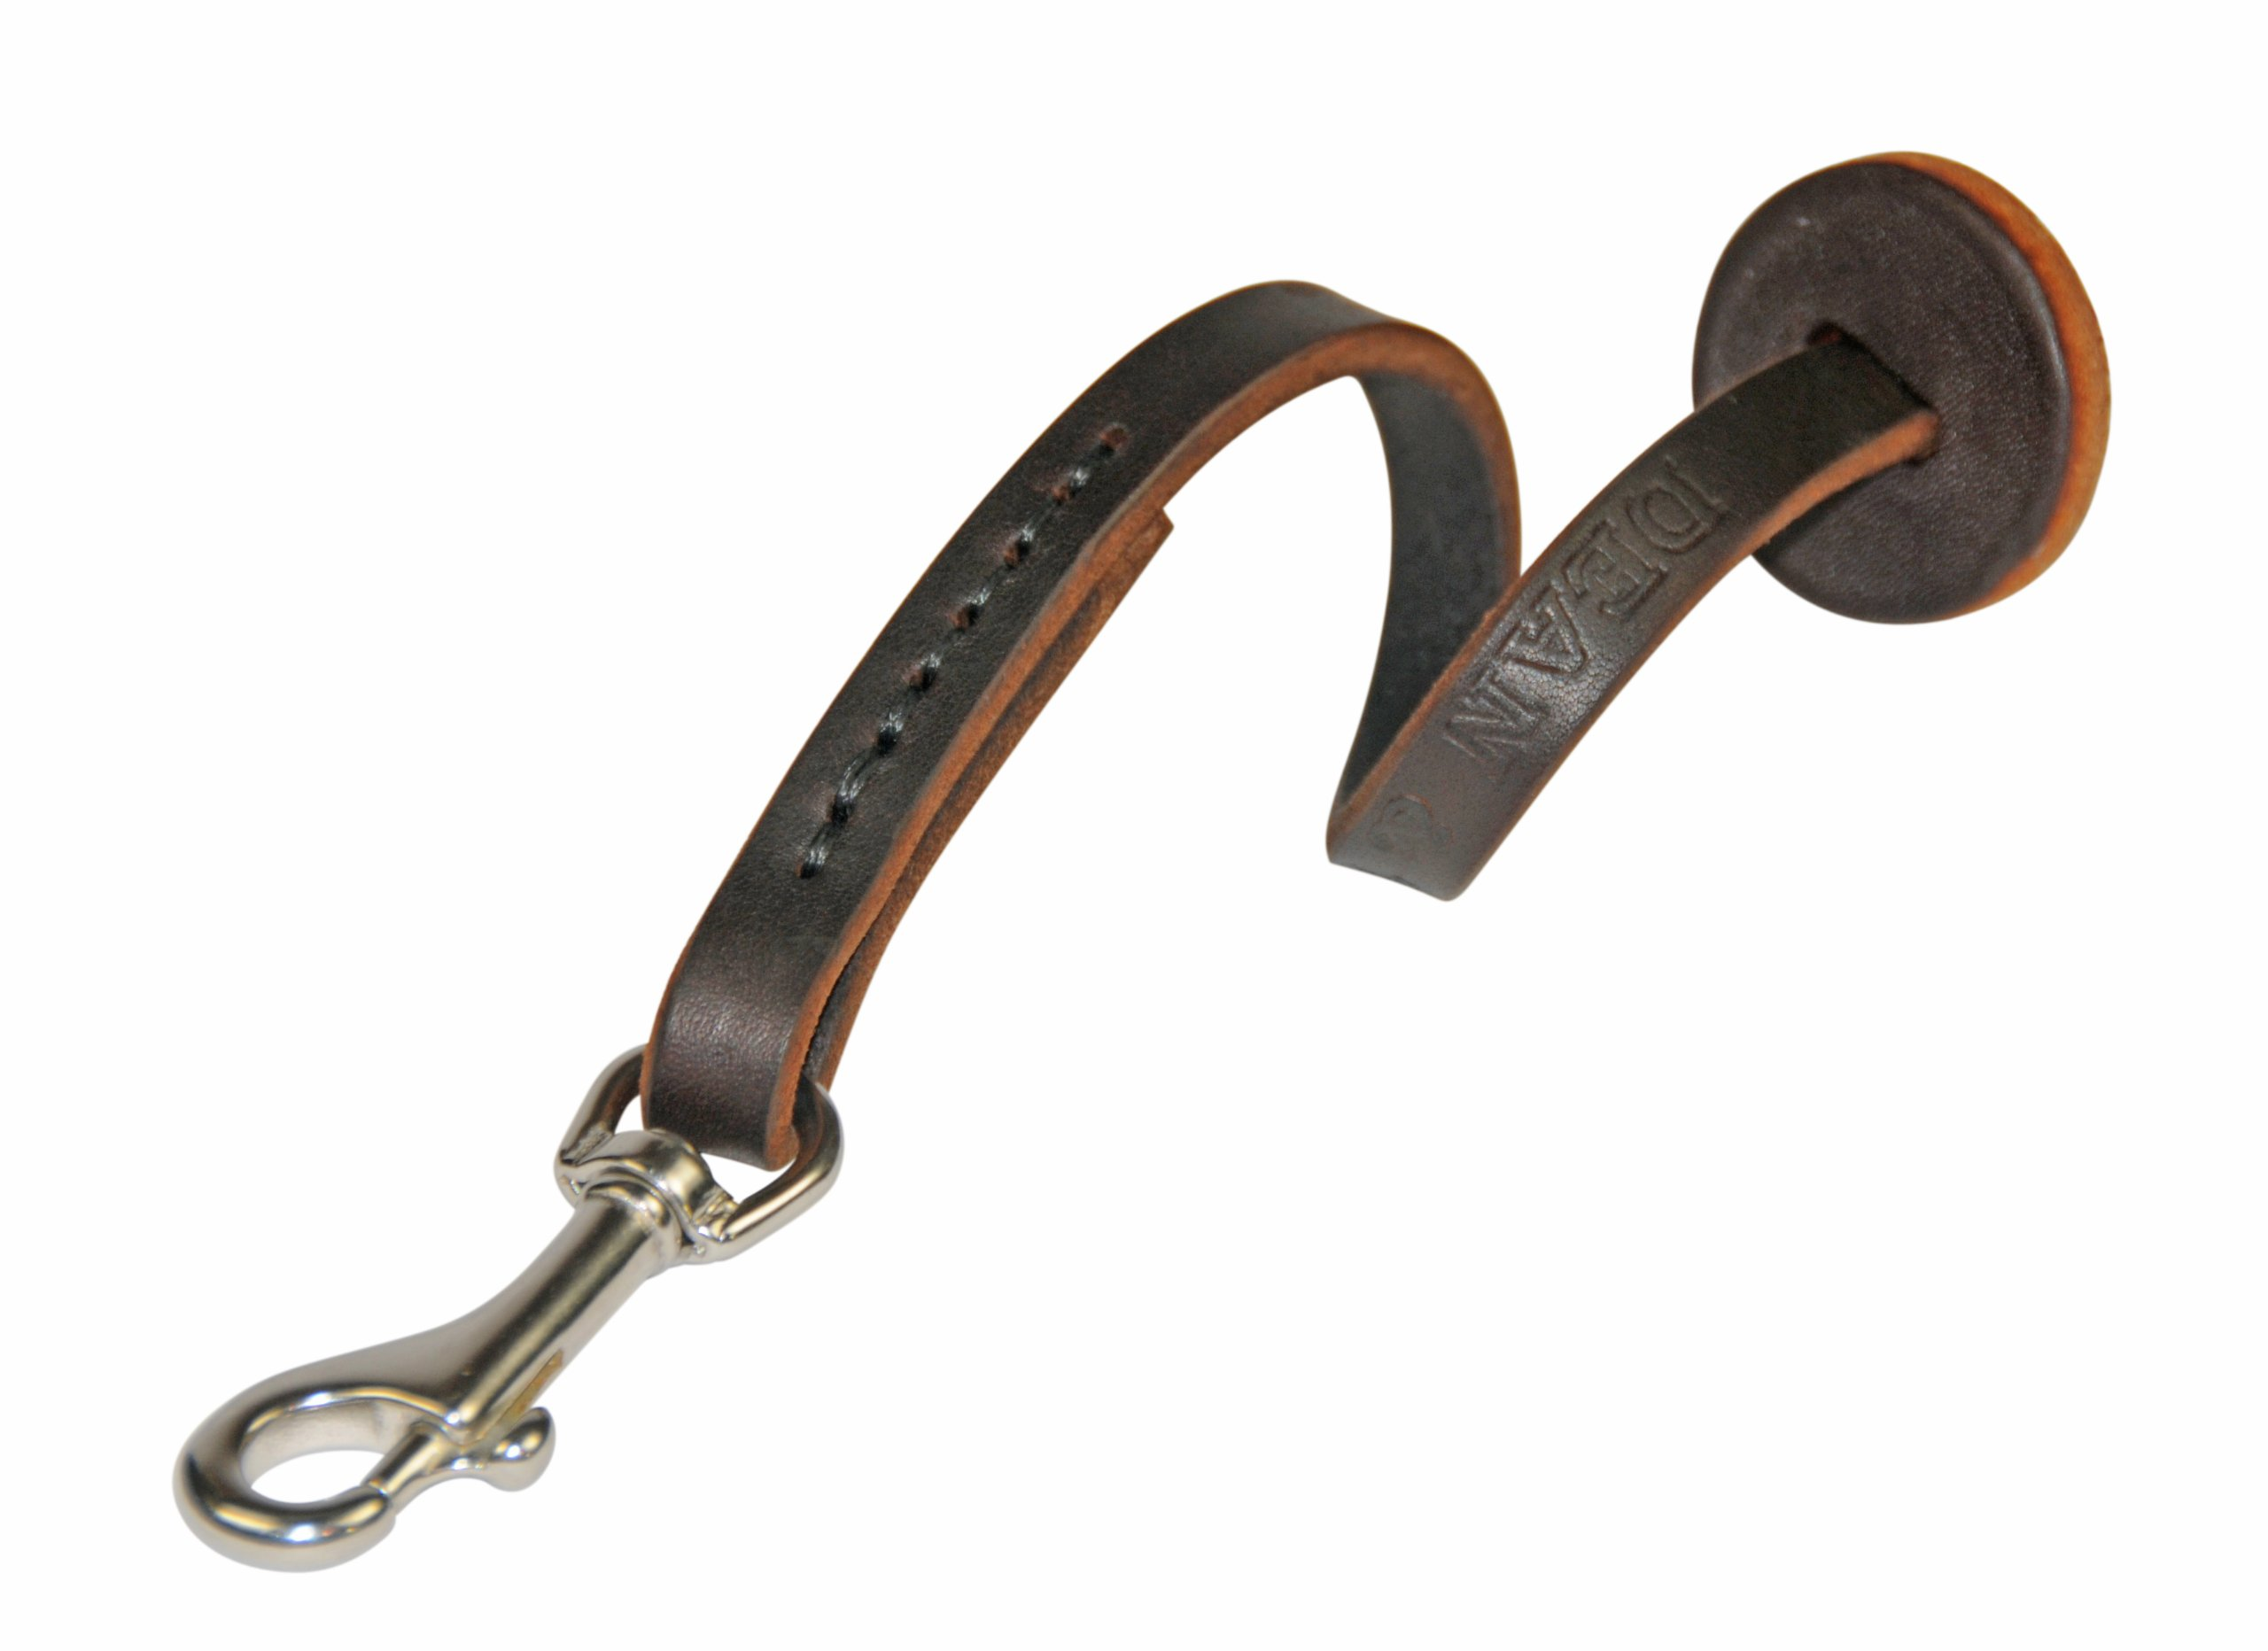 Dean and Tyler Hand Control Dog Leash, Brown 3-Feet with Stainless Steel Hardware